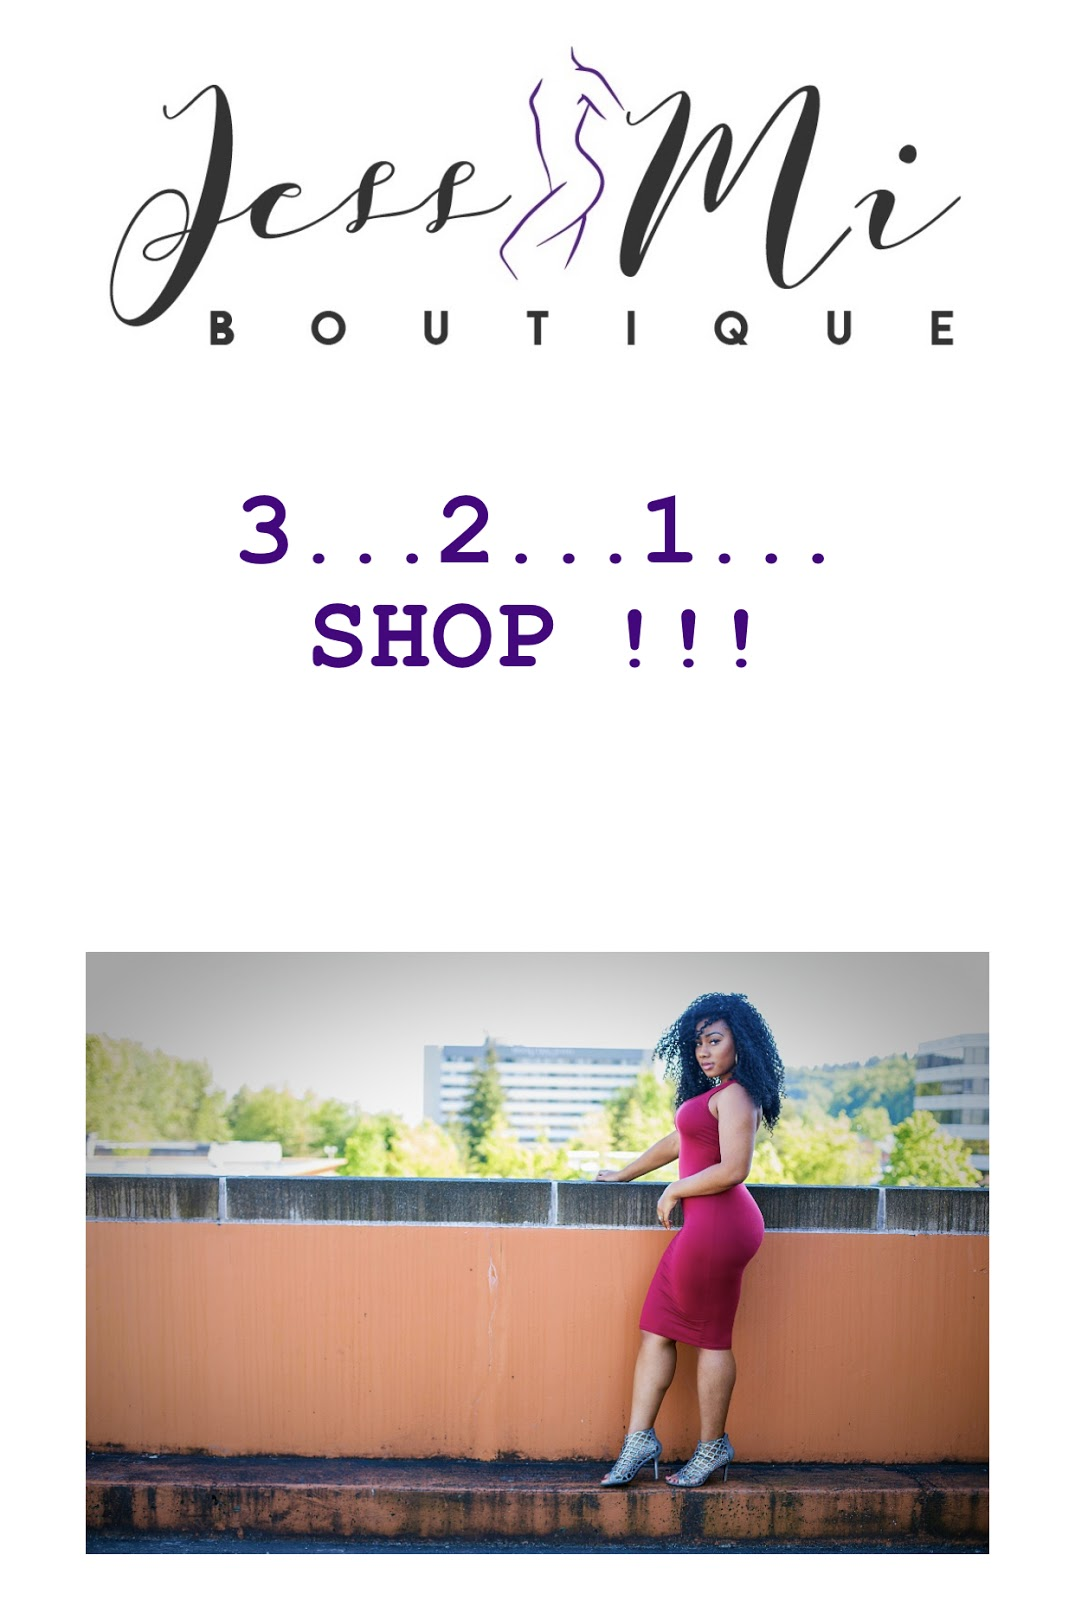 on-starting-an-online-women-s-boutique-without-previous-e-commerce-experience